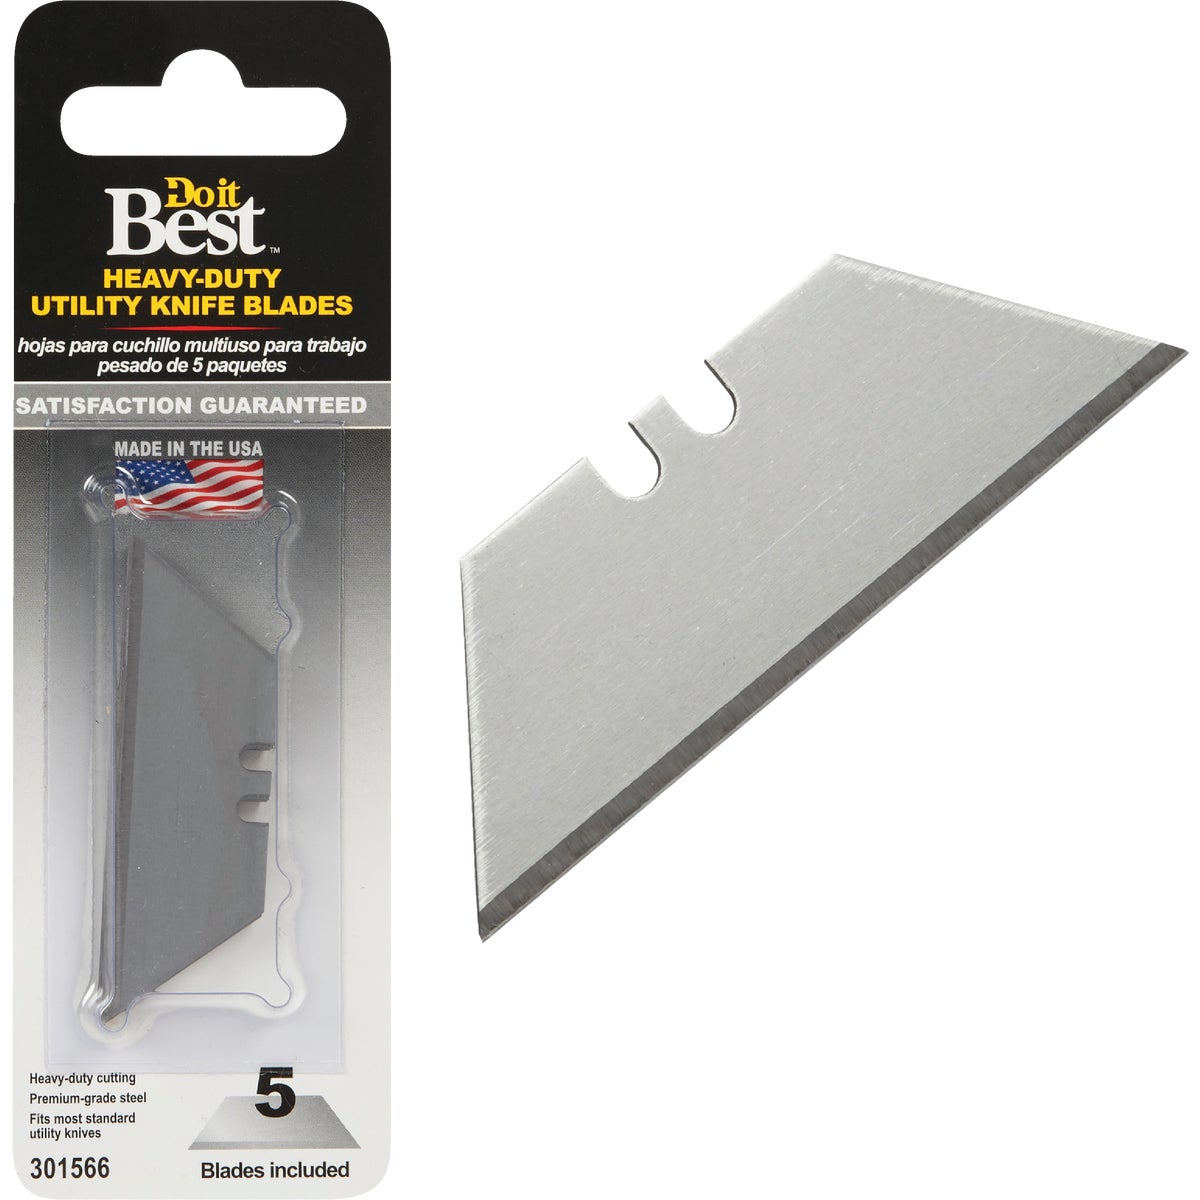 5CD HEAVY DUTY BLADES - 301566 by Do it Best